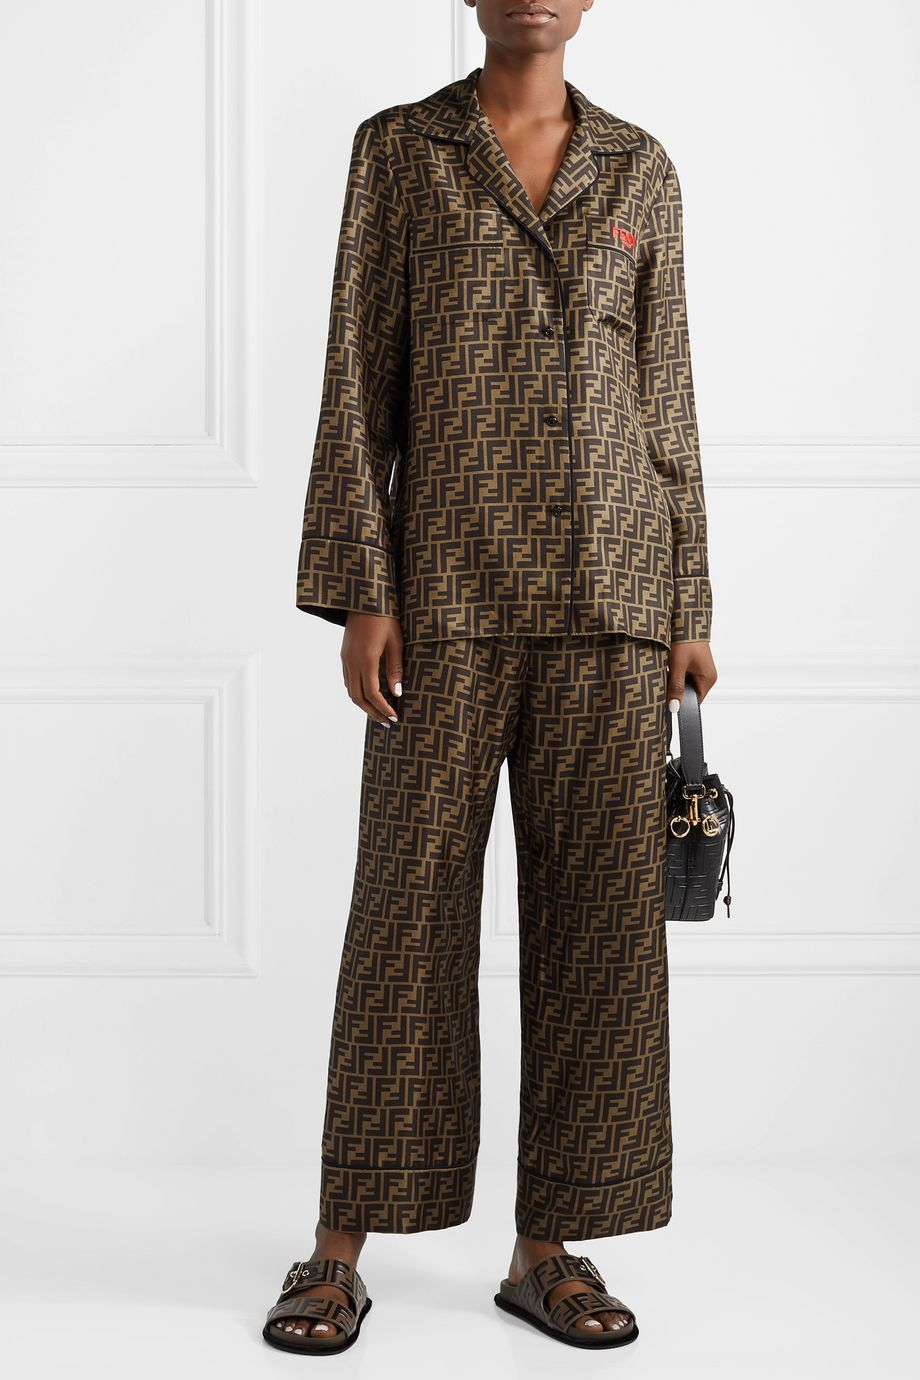 Fendi Embroidered printed silk-satin shirt